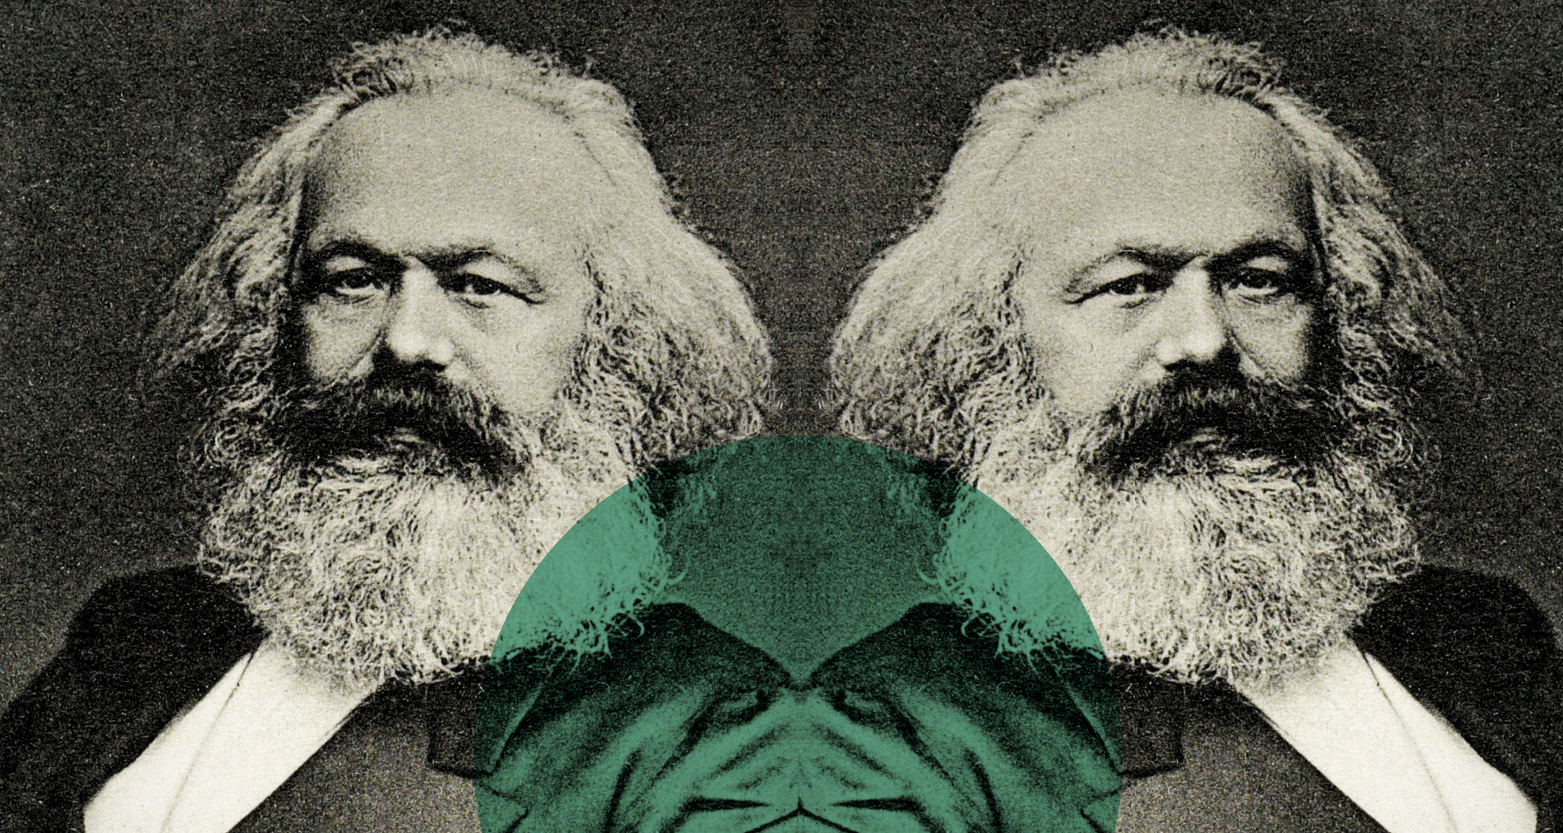 Dossiê | Marx e as crises do capitalismo